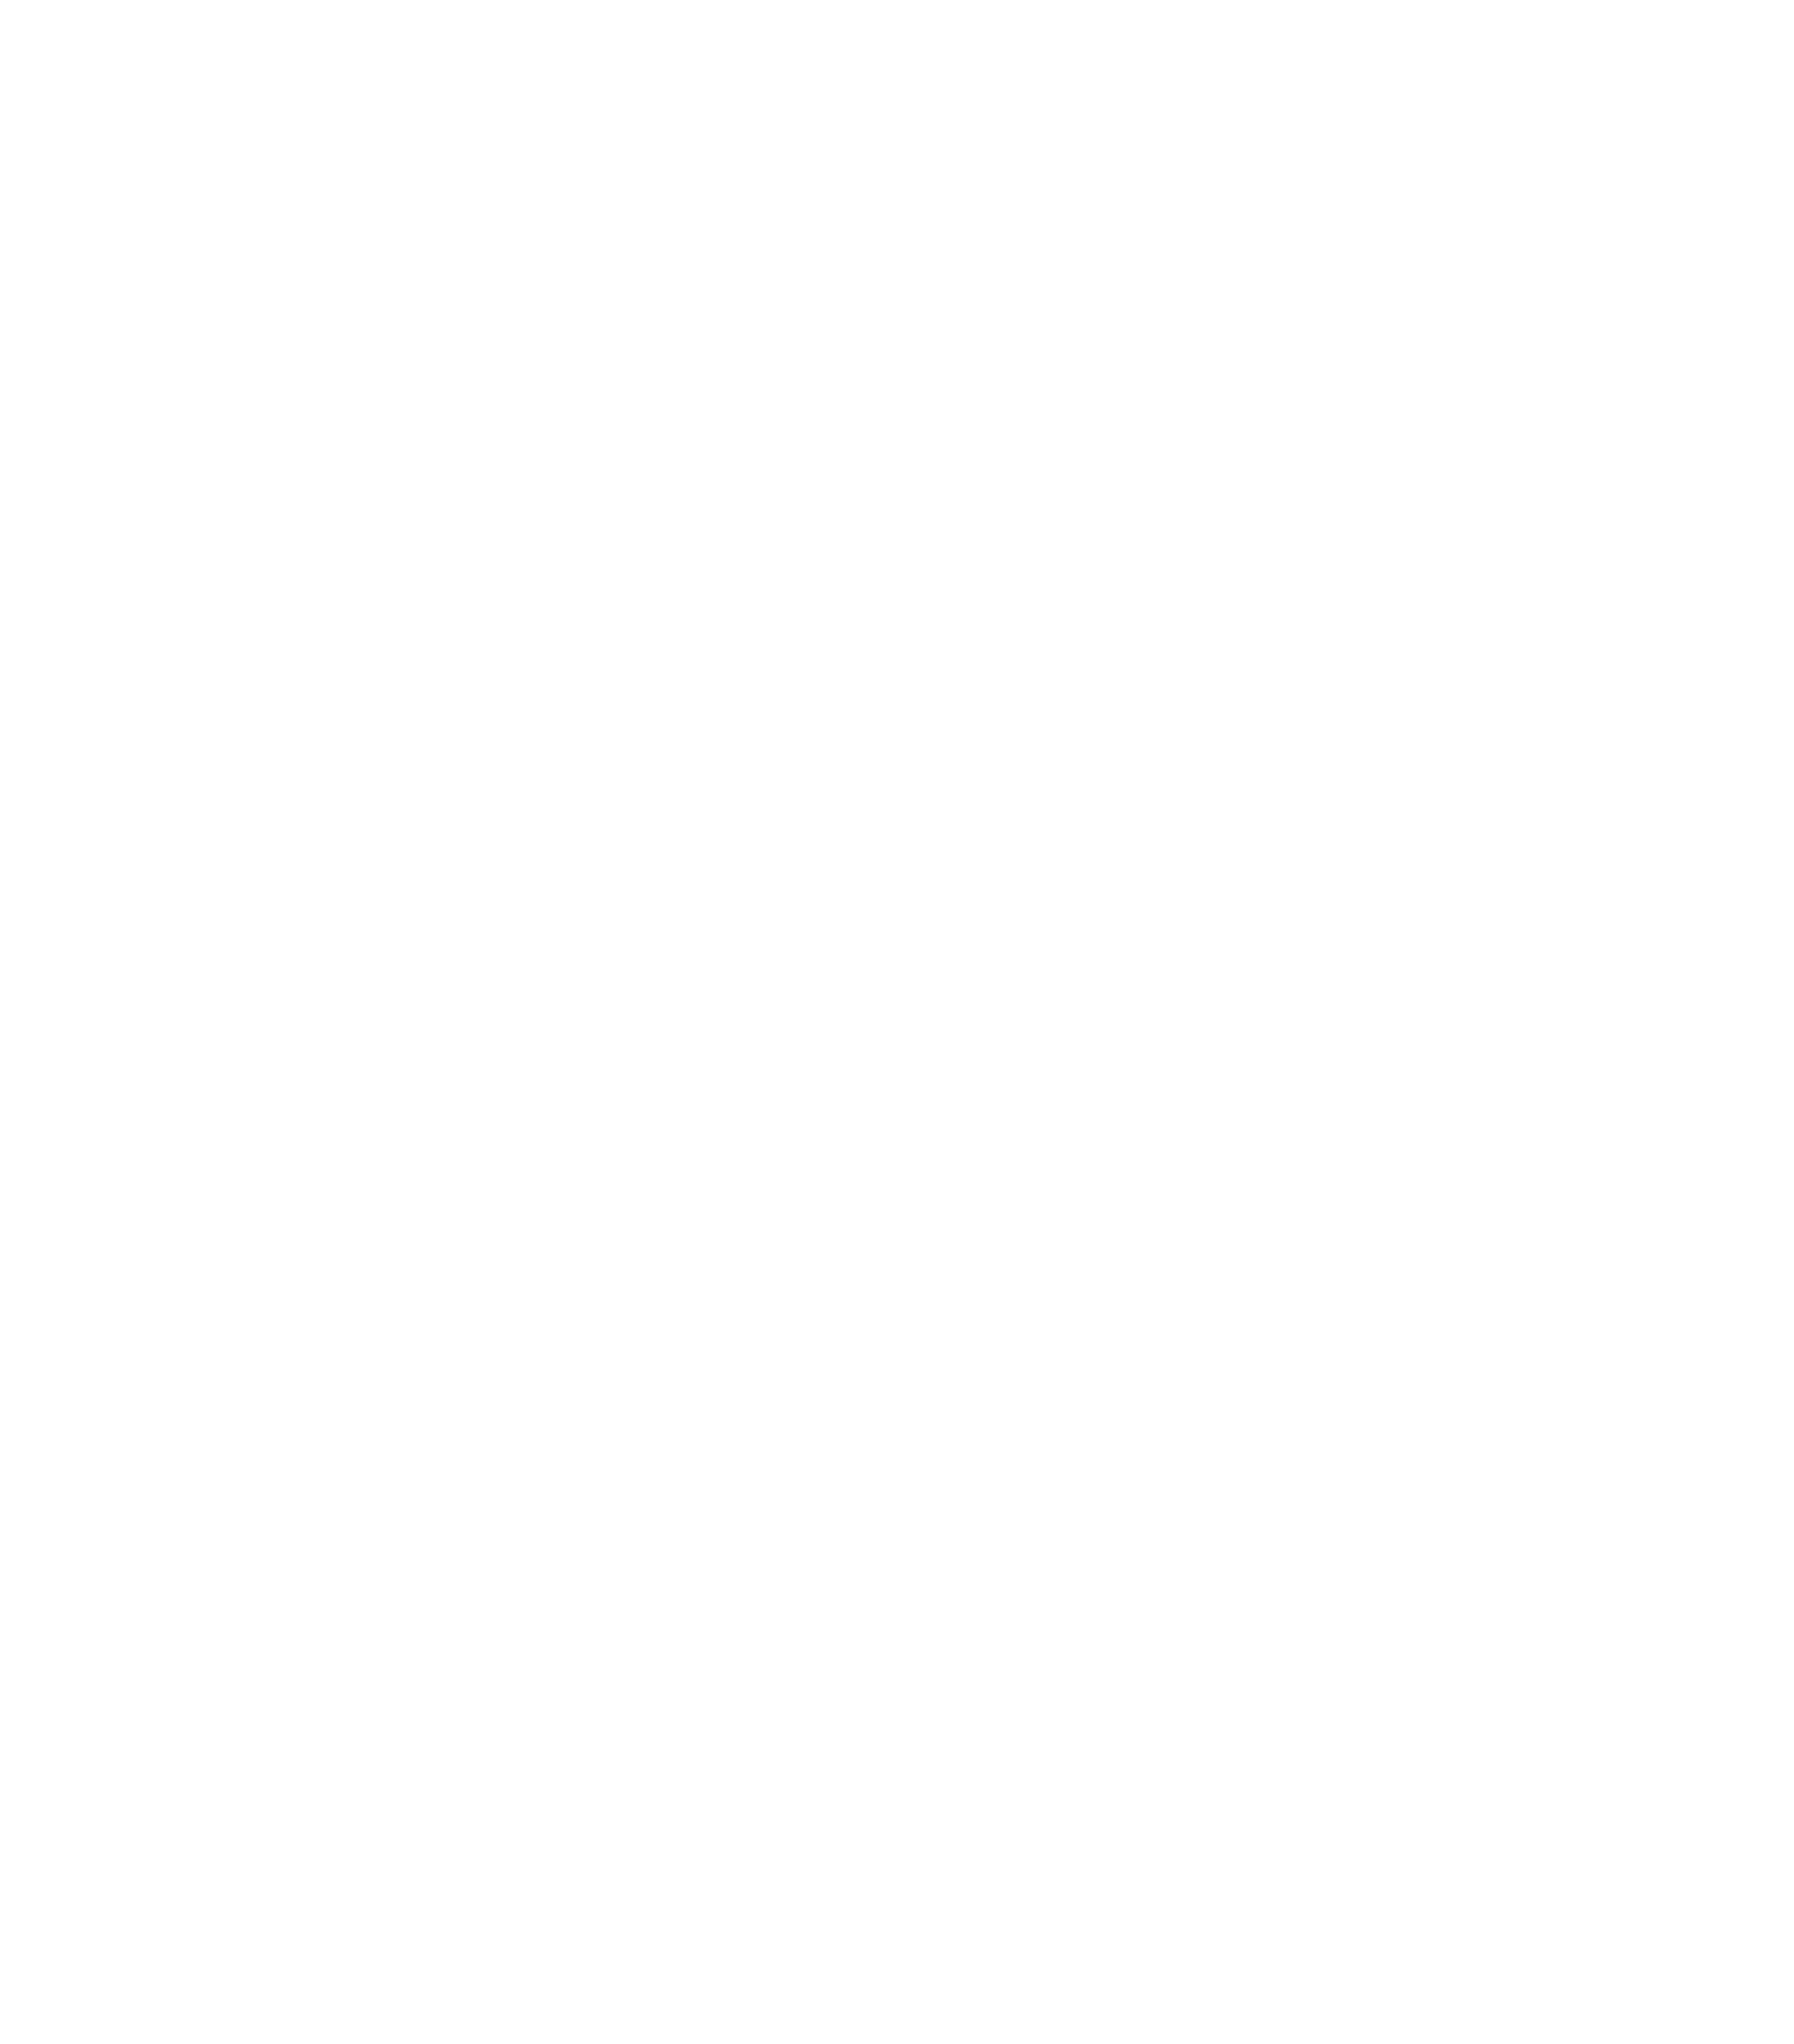 neural_corp_benchmark_electronics_arrows_white.png